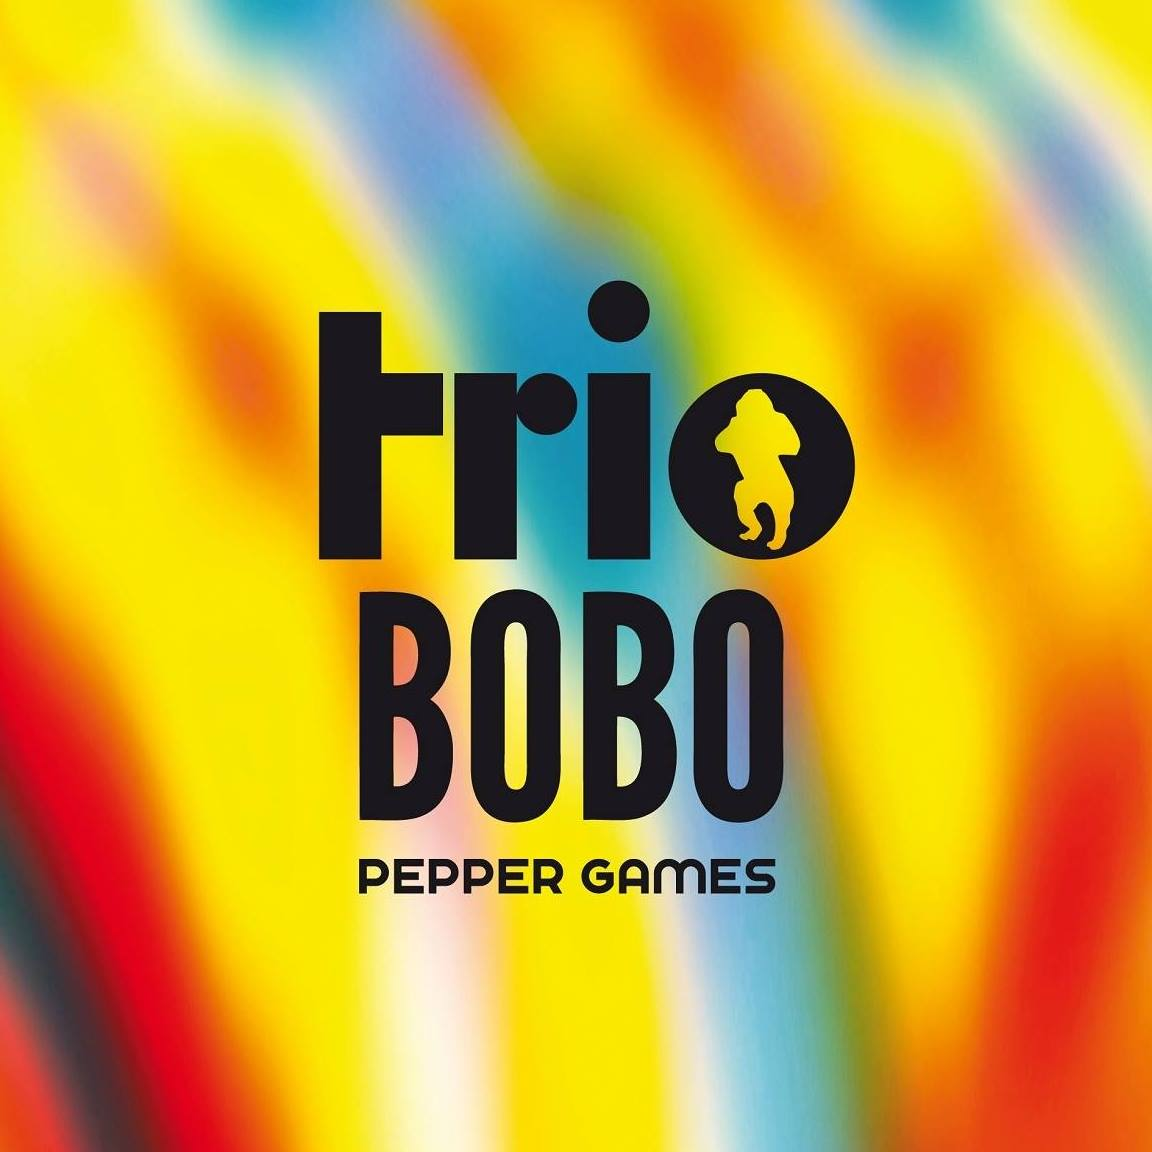 Pepper Games, il nuovo cd del Trio Bobo